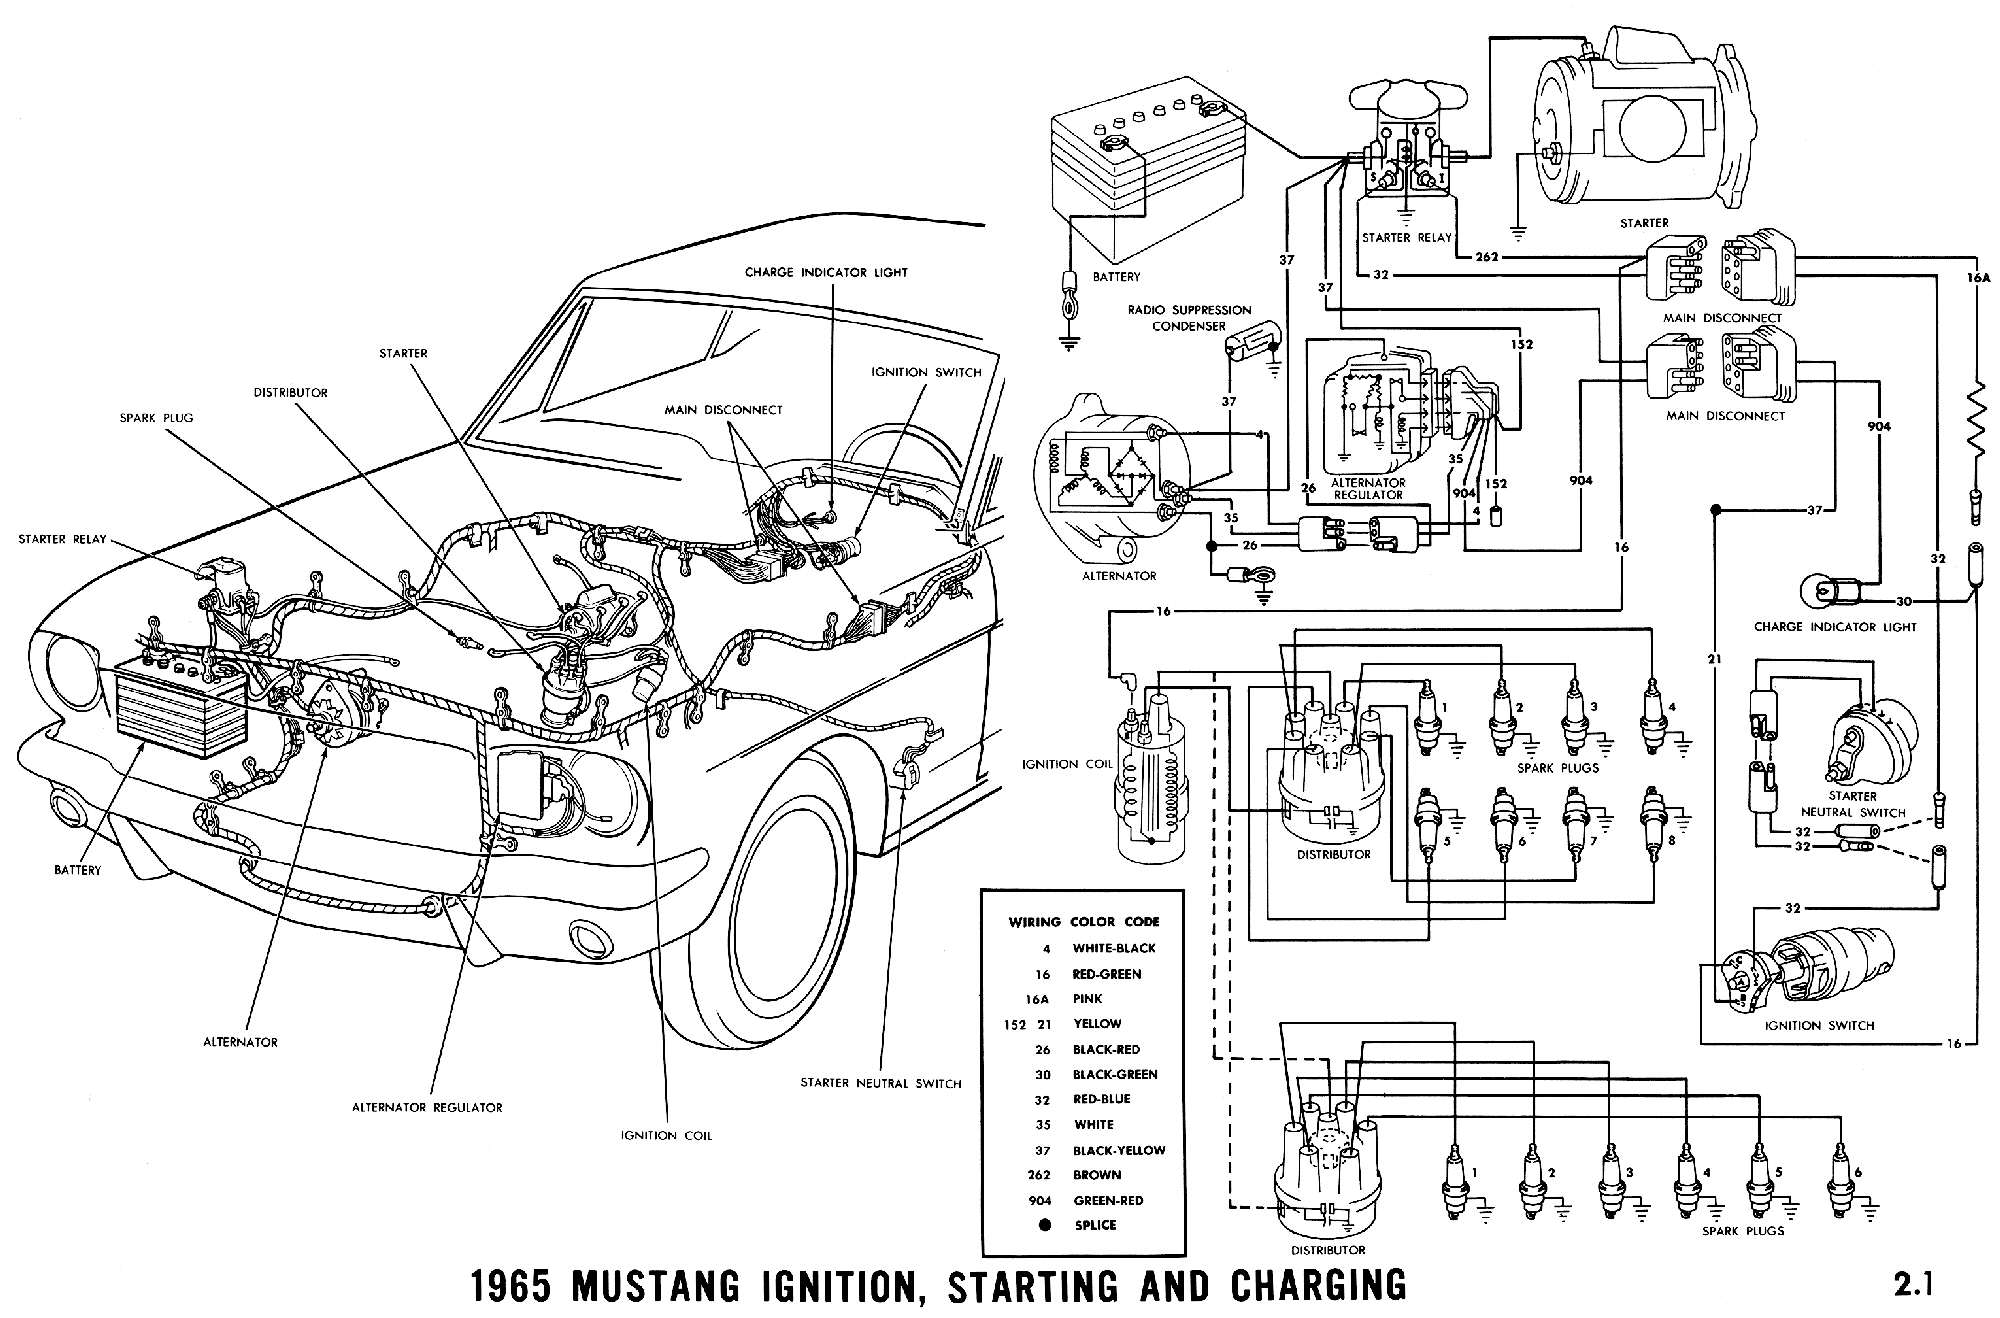 1965 mustang wiring diagrams average joe restoration rh averagejoerestoration com engine wiring diagram 1968 buick skylark 1965 mustang engine wiring diagram